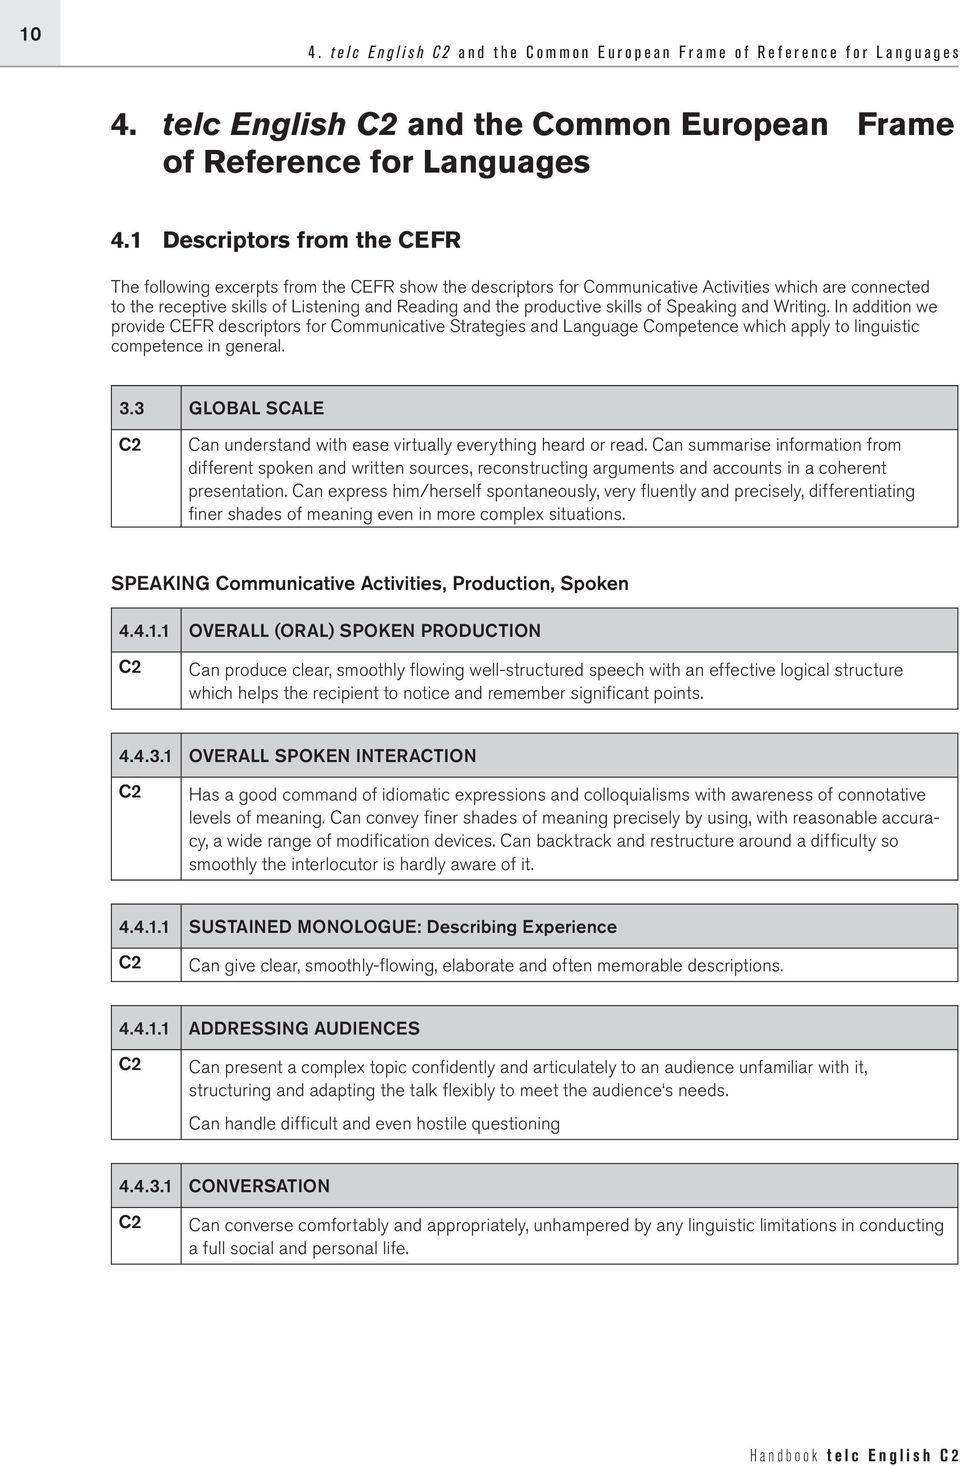 1 Descriptors from the CEFR The following excerpts from the CEFR show the descriptors for Communicative Activities which are connected to the receptive skills of Listening and Reading and the